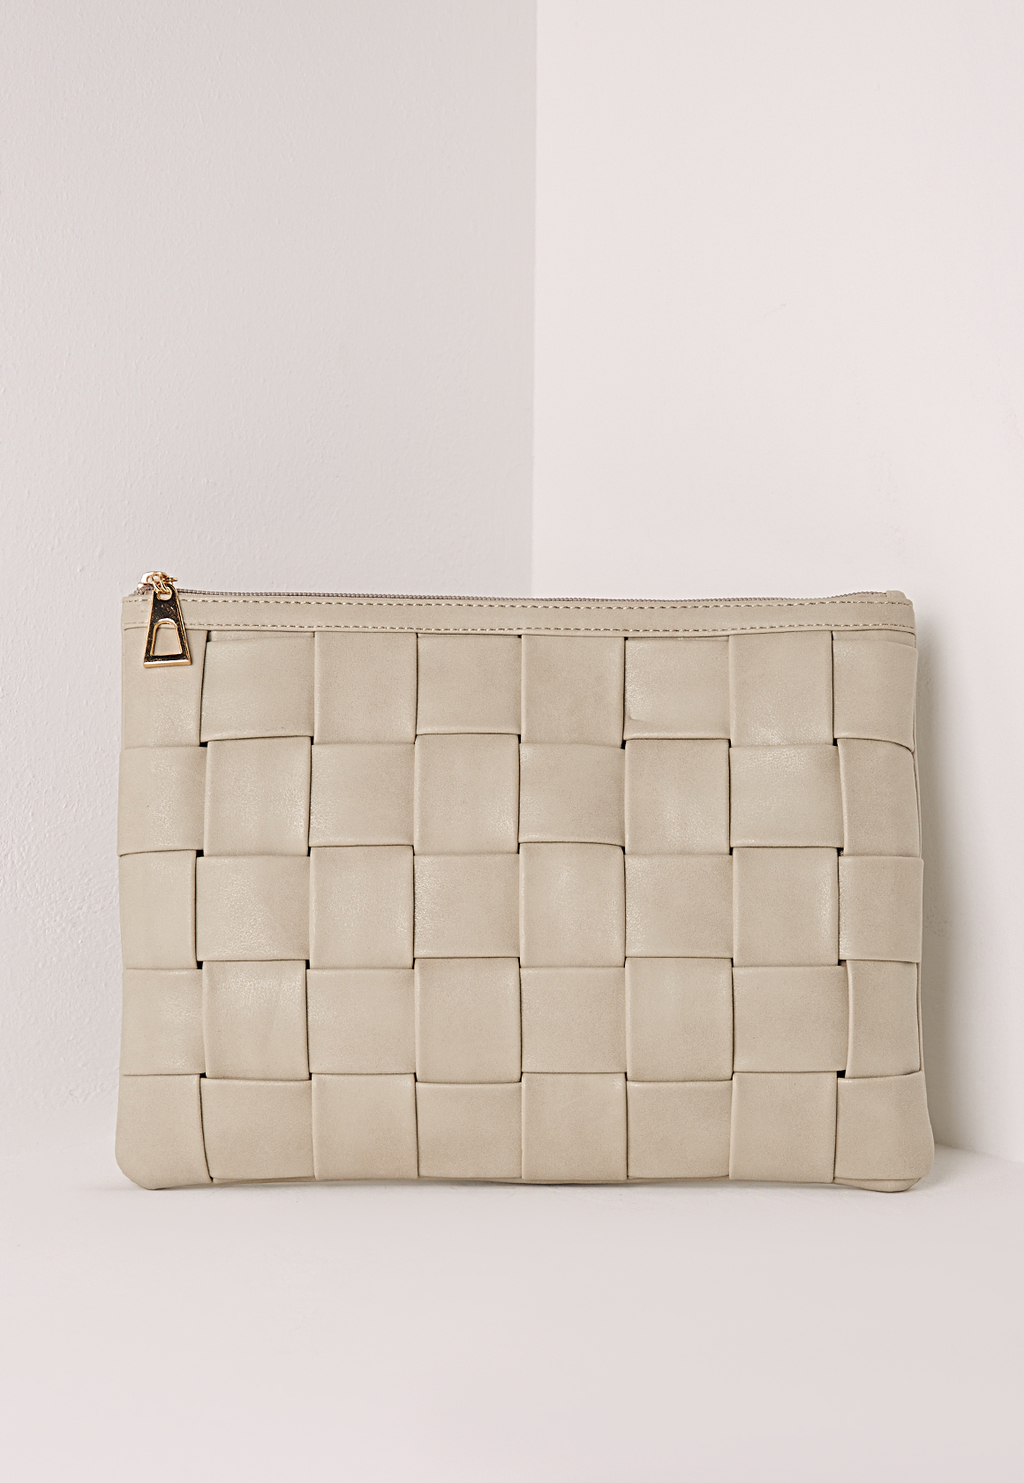 Oversize Twil Weave Suedette Clutch Beige, Beige - predominant colour: stone; occasions: evening, occasion; type of pattern: standard; style: clutch; length: hand carry; size: small; material: faux leather; pattern: plain; finish: plain; season: s/s 2016; wardrobe: event